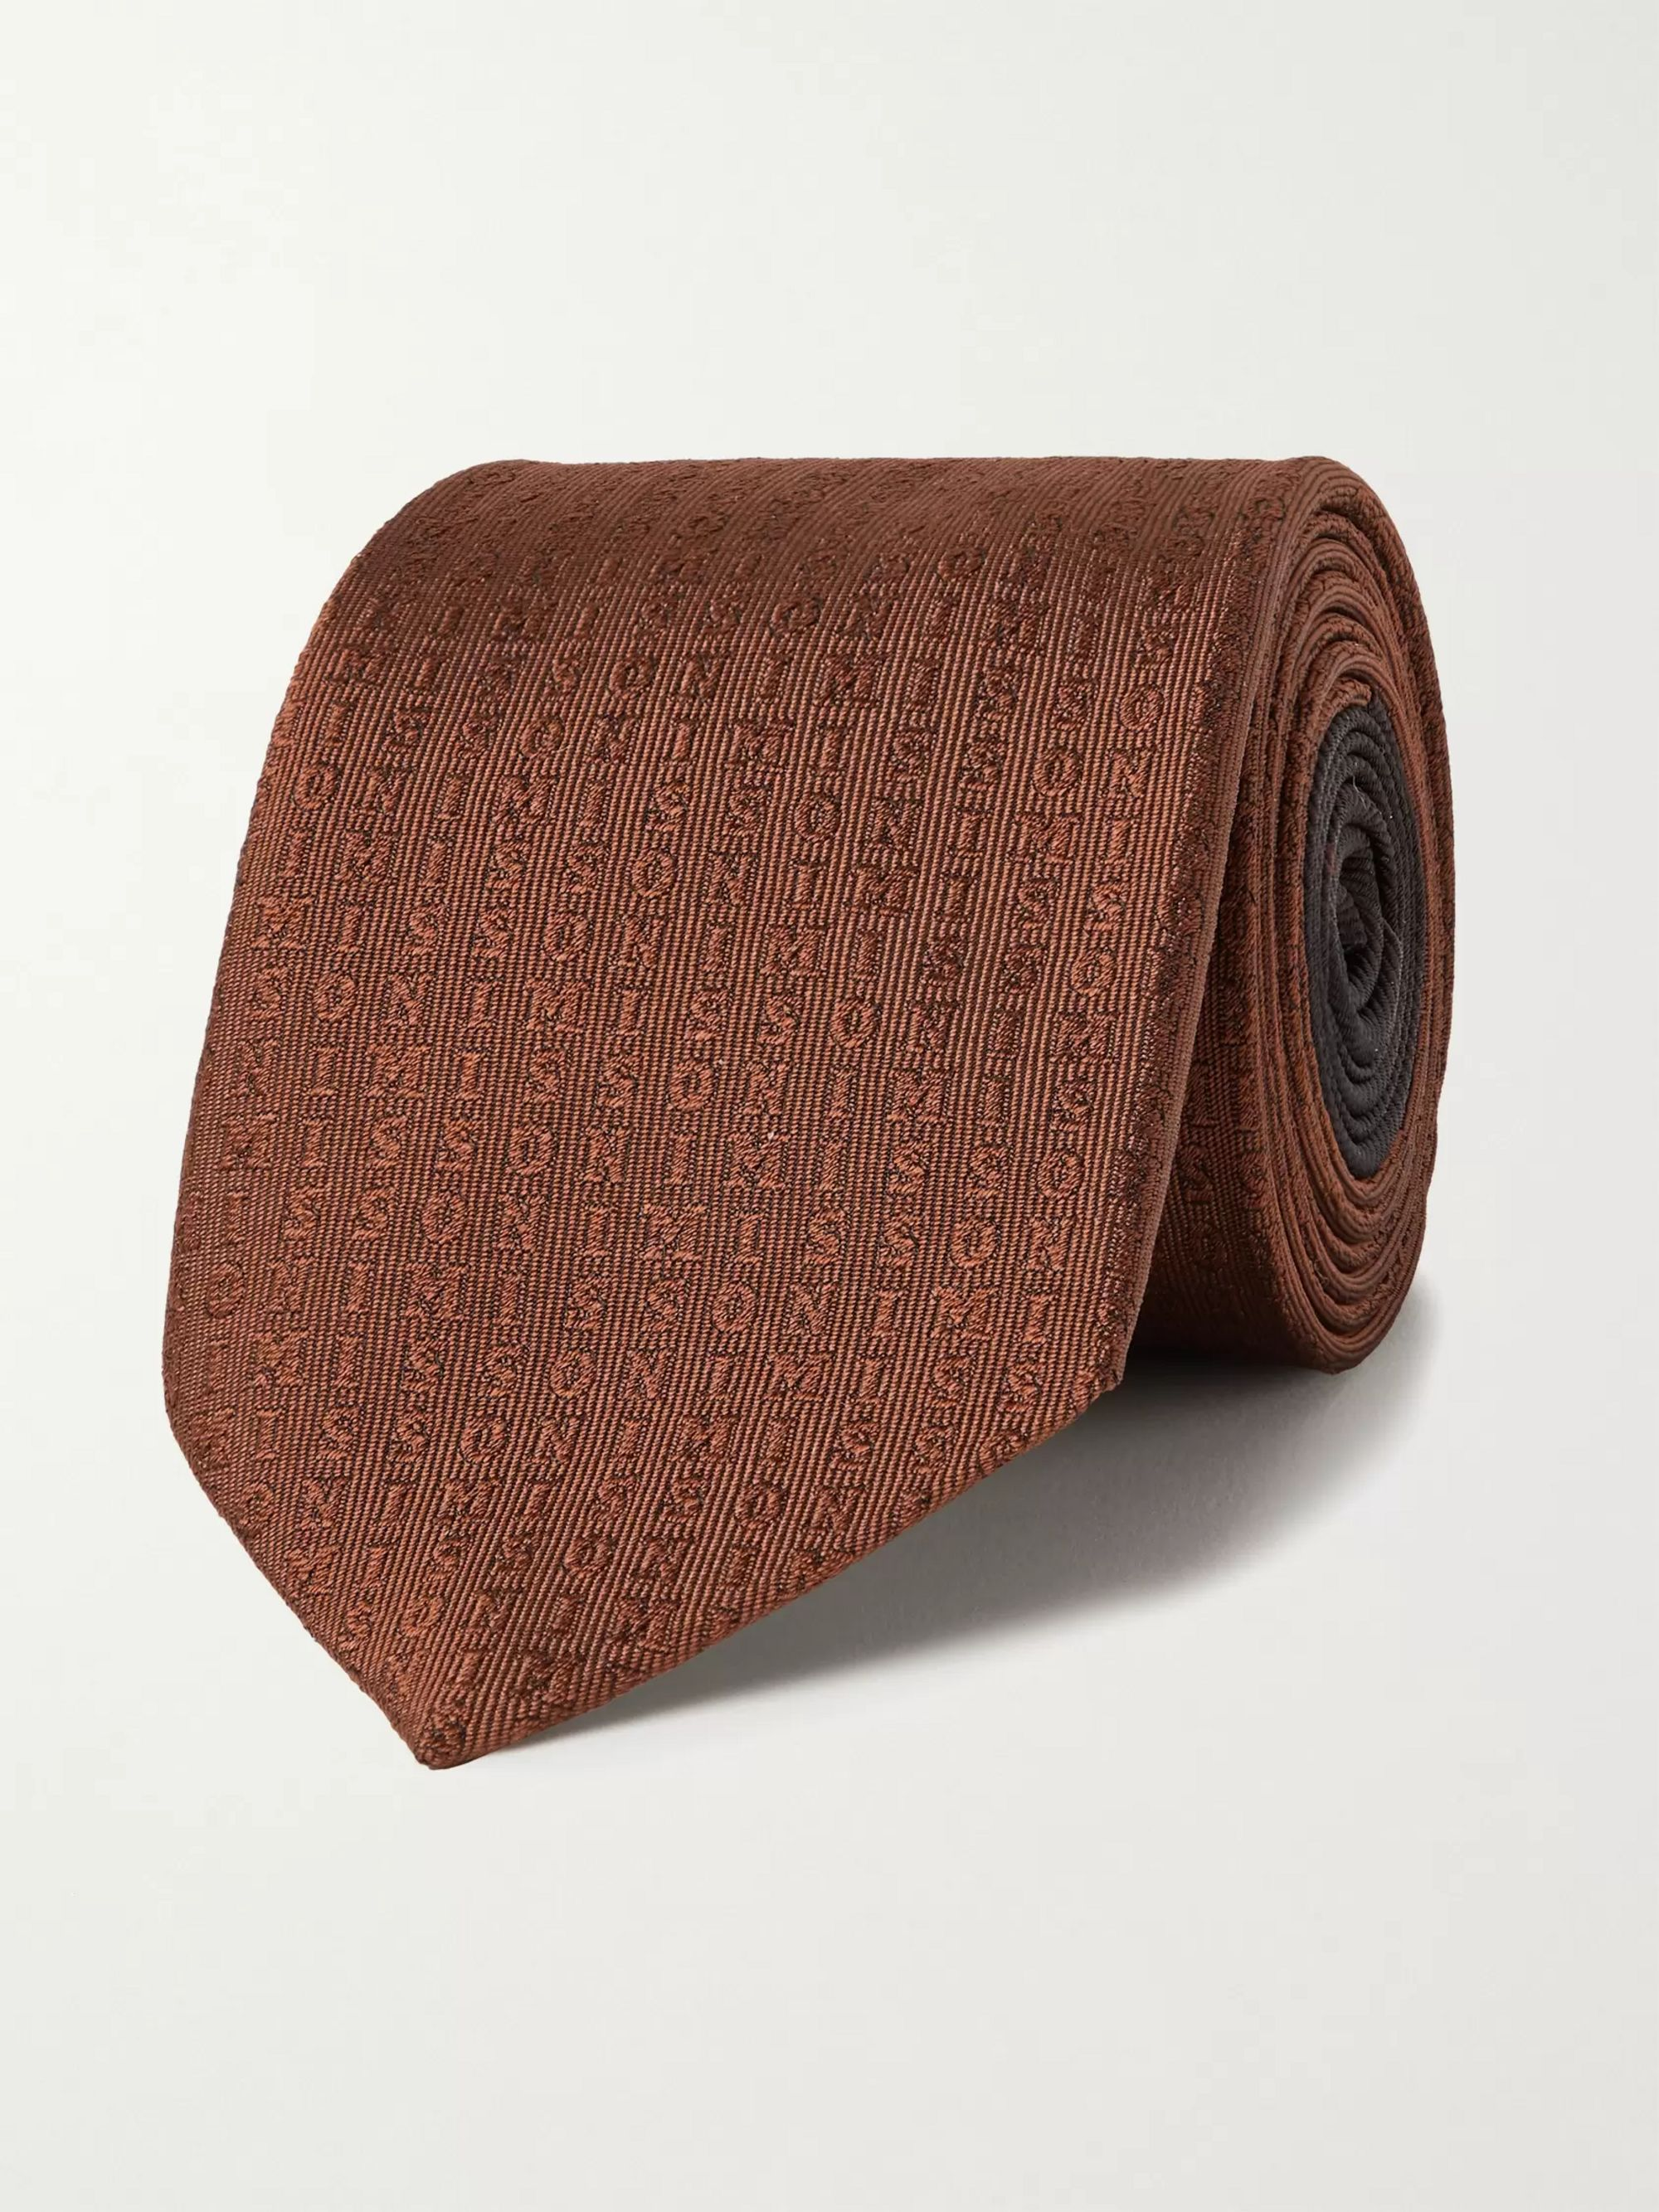 미쏘니 Missoni 7cm Logo-Jacquard Silk Tie,Brown